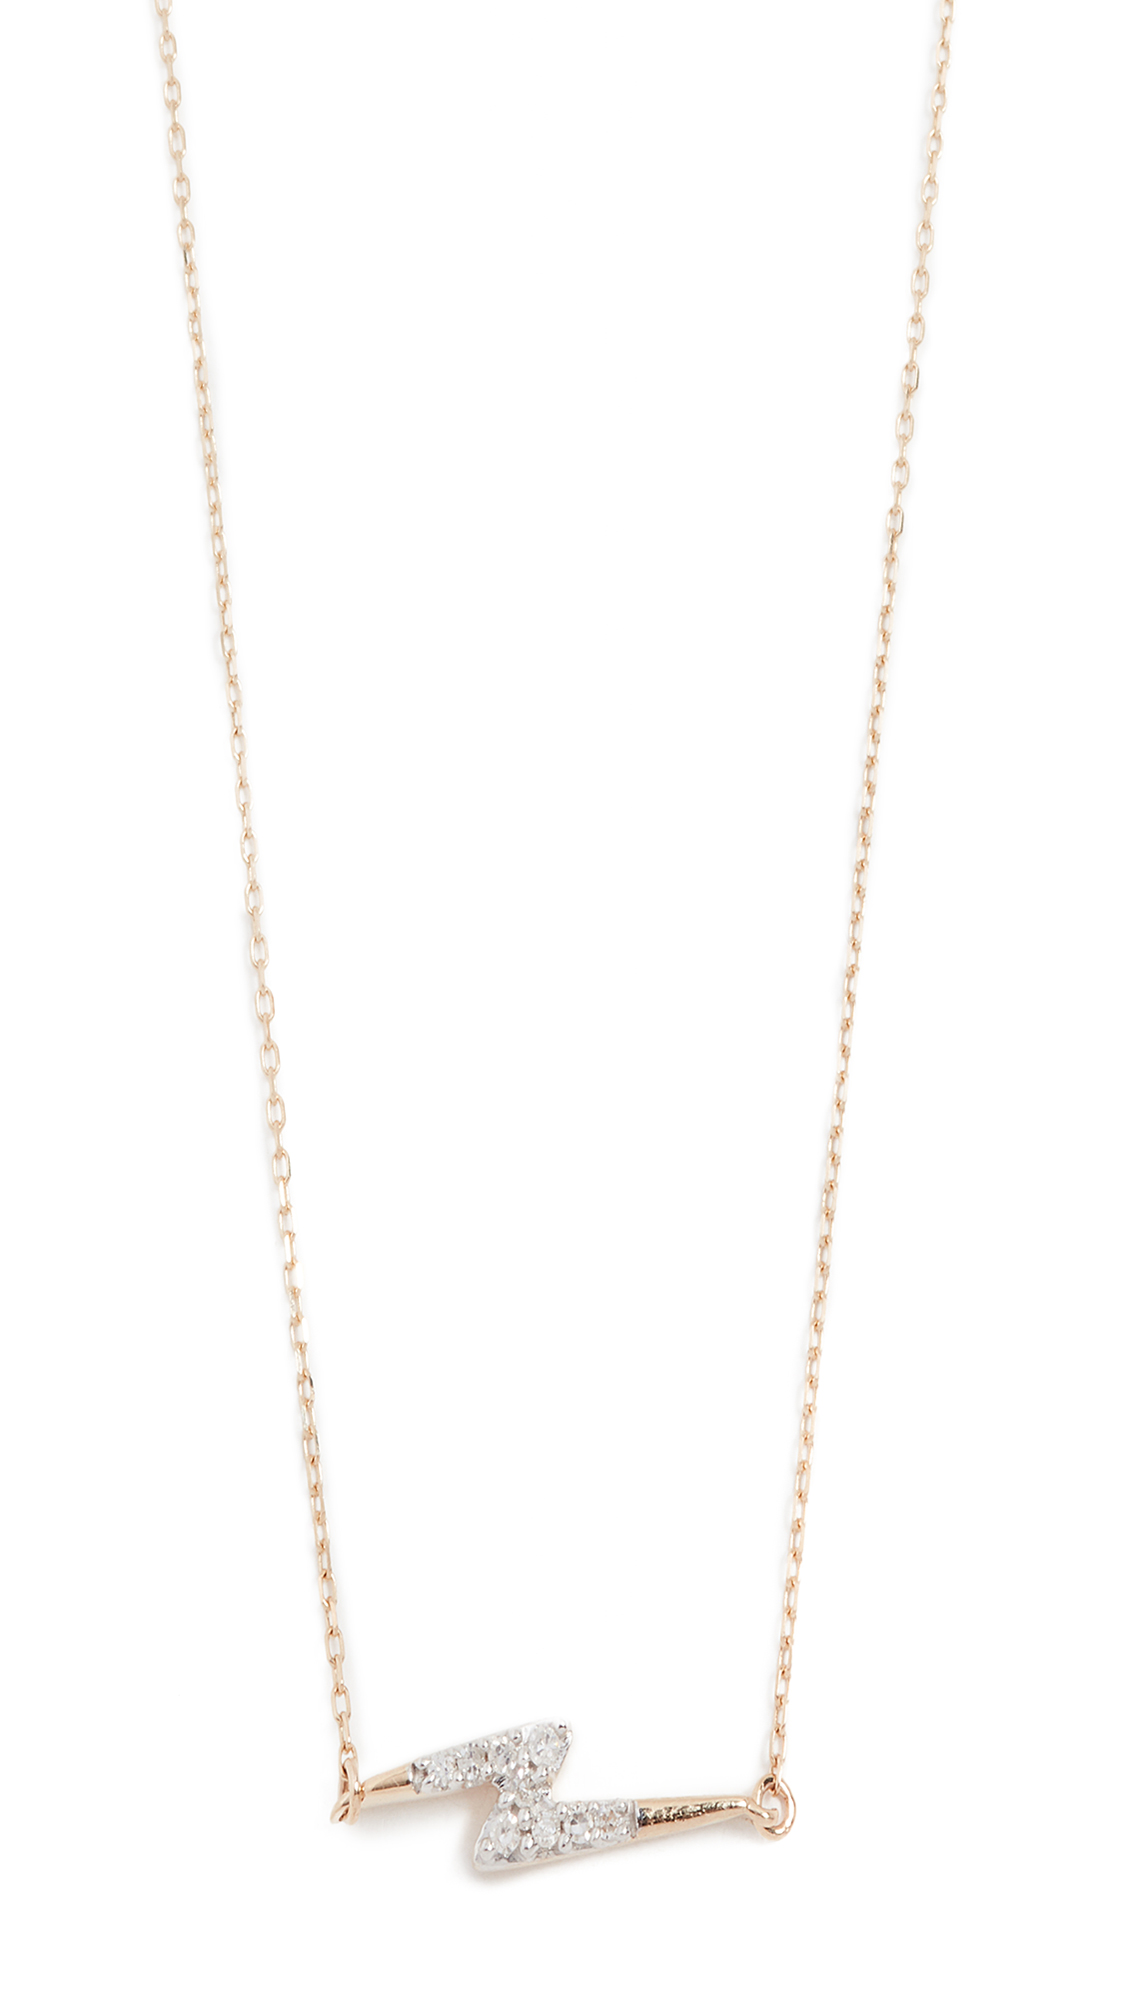 ADINA REYTER 14K GOLD PAVE LIGHTNING BOLT NECKLACE